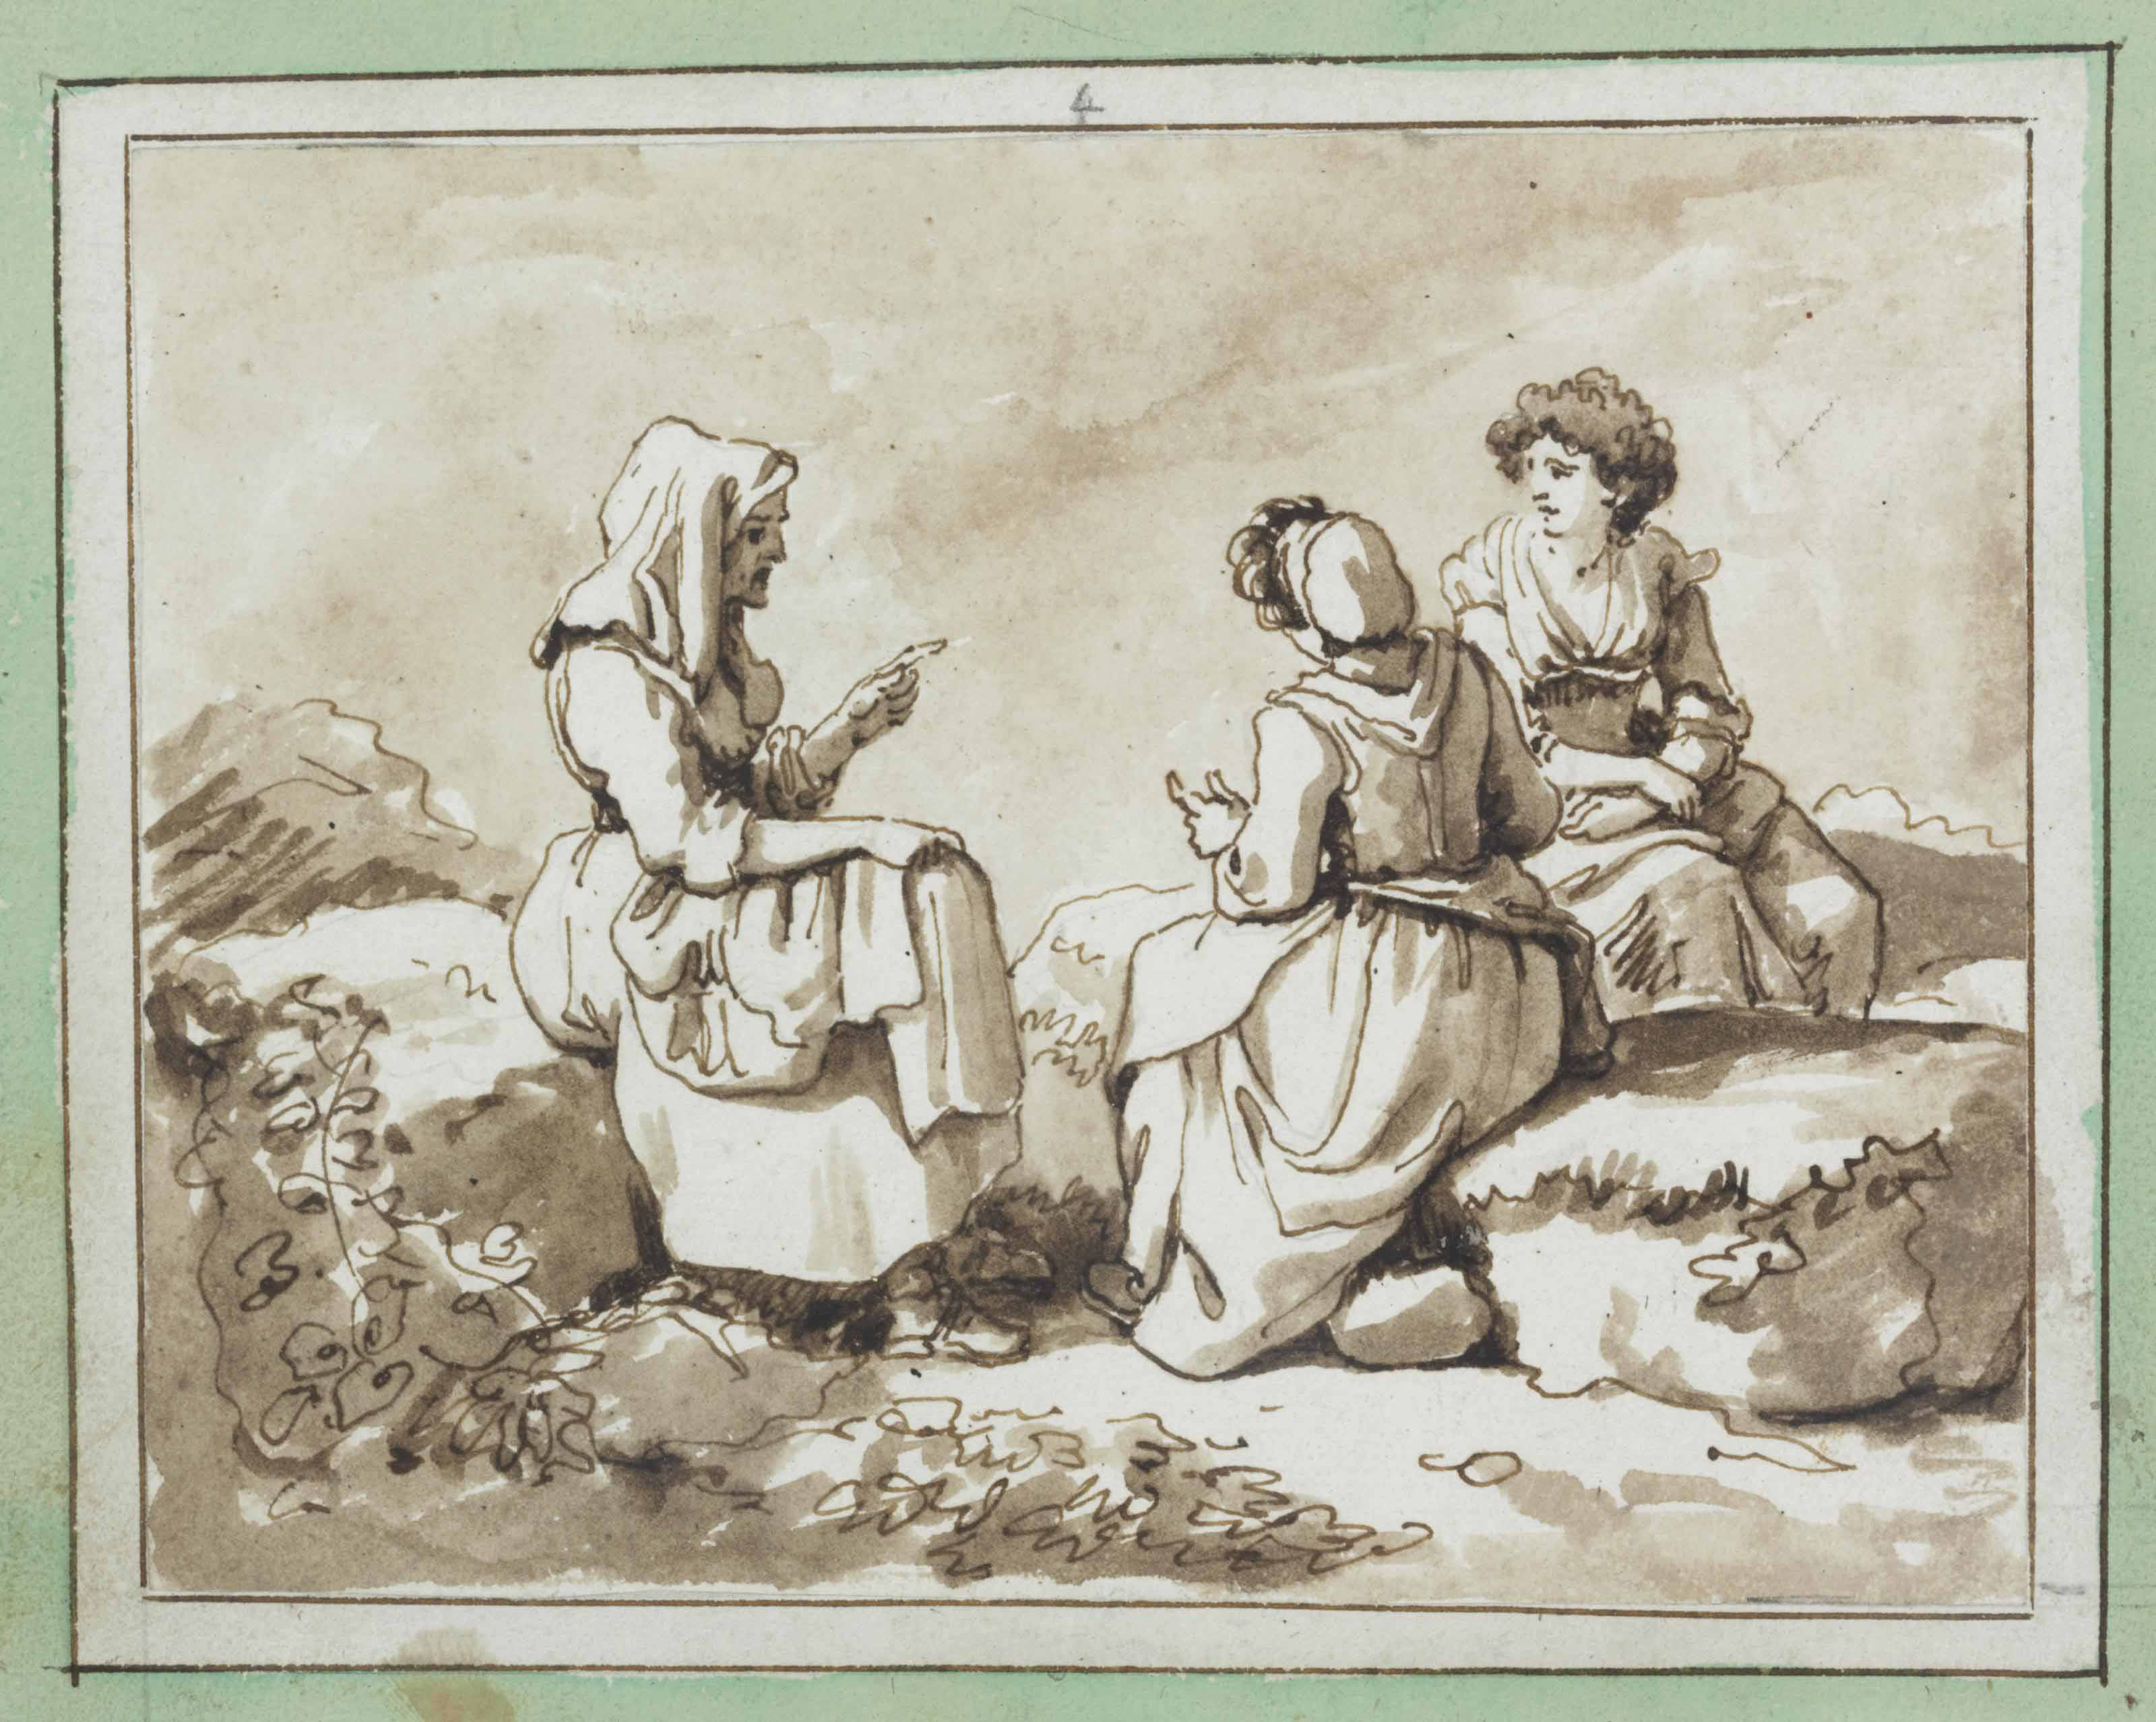 Three peasant women seated in conversation in a rocky landscape